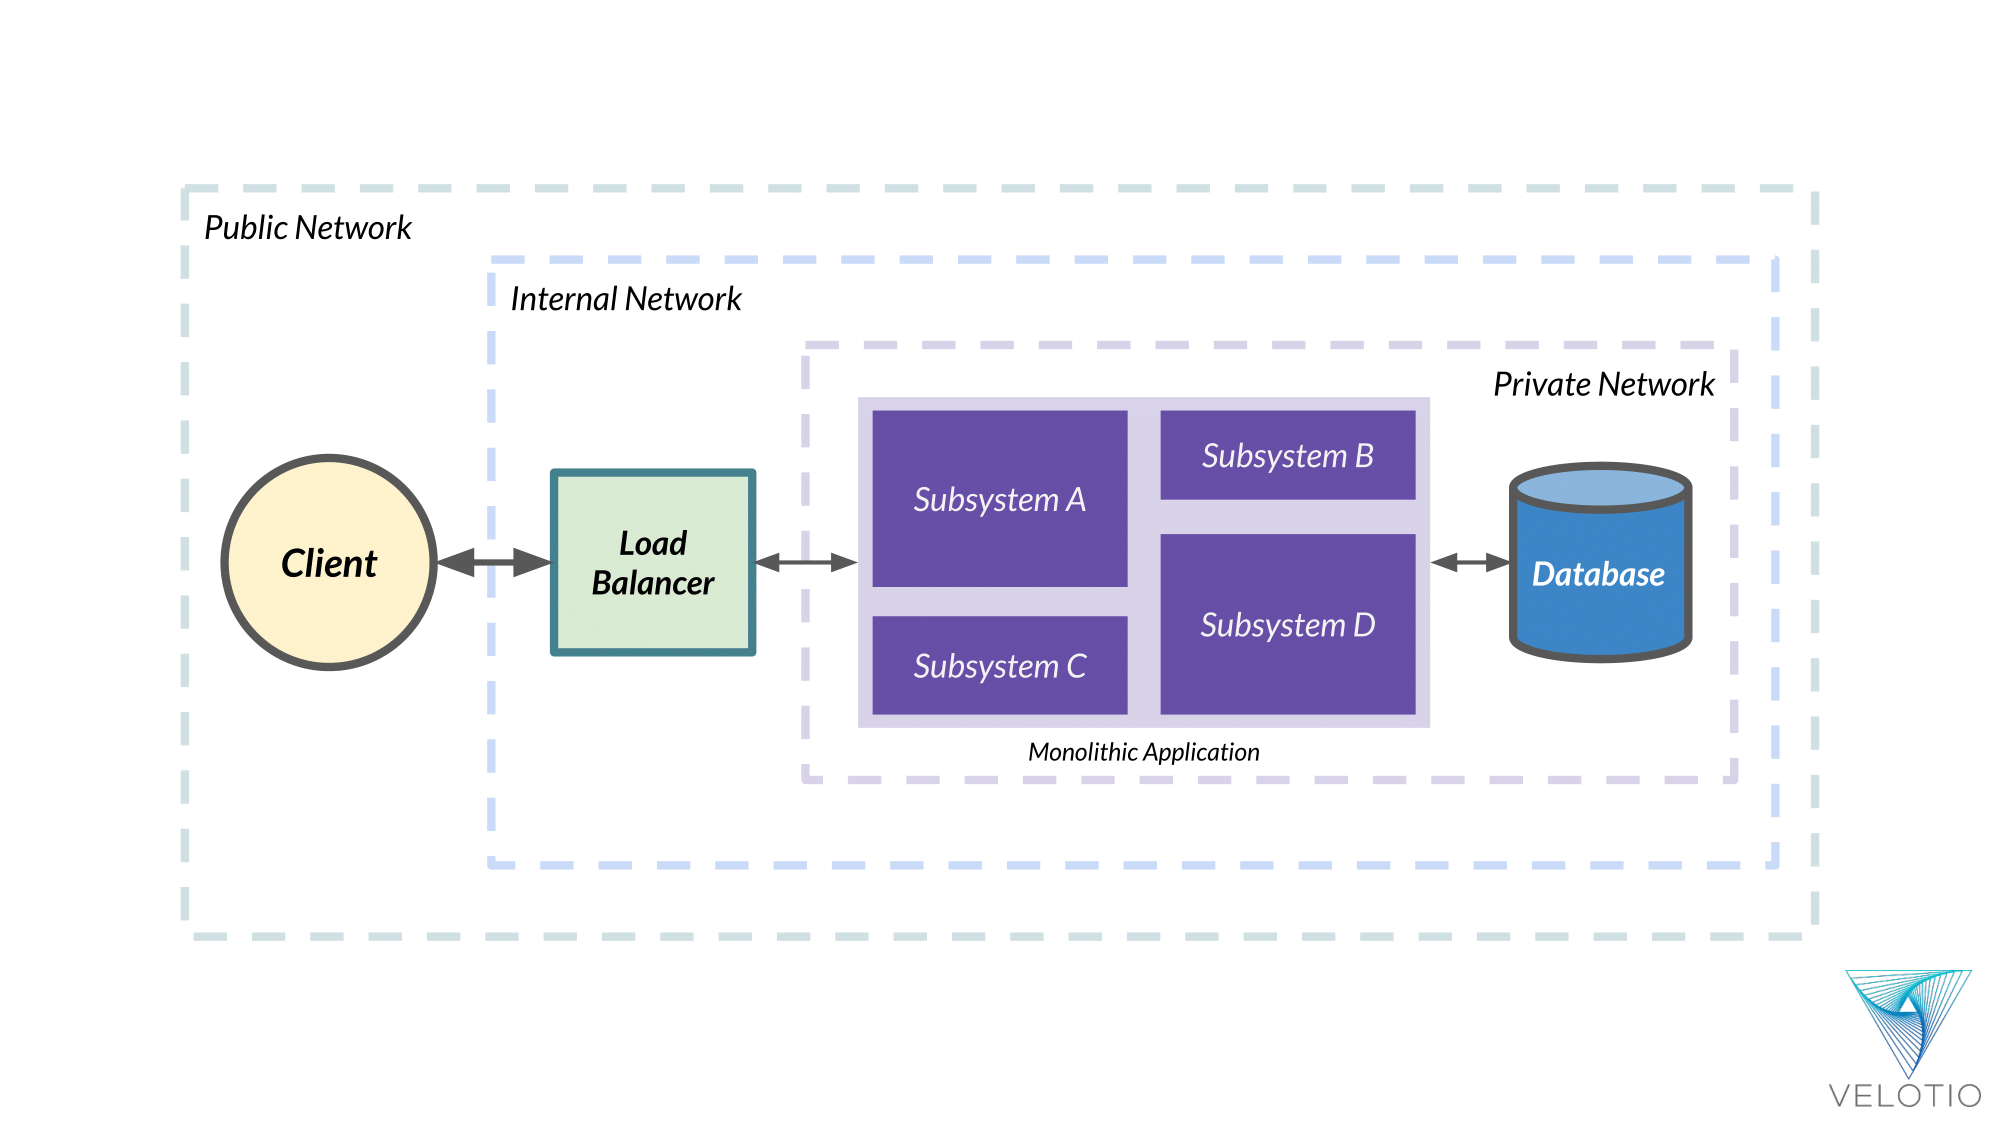 Different network zones in typical application